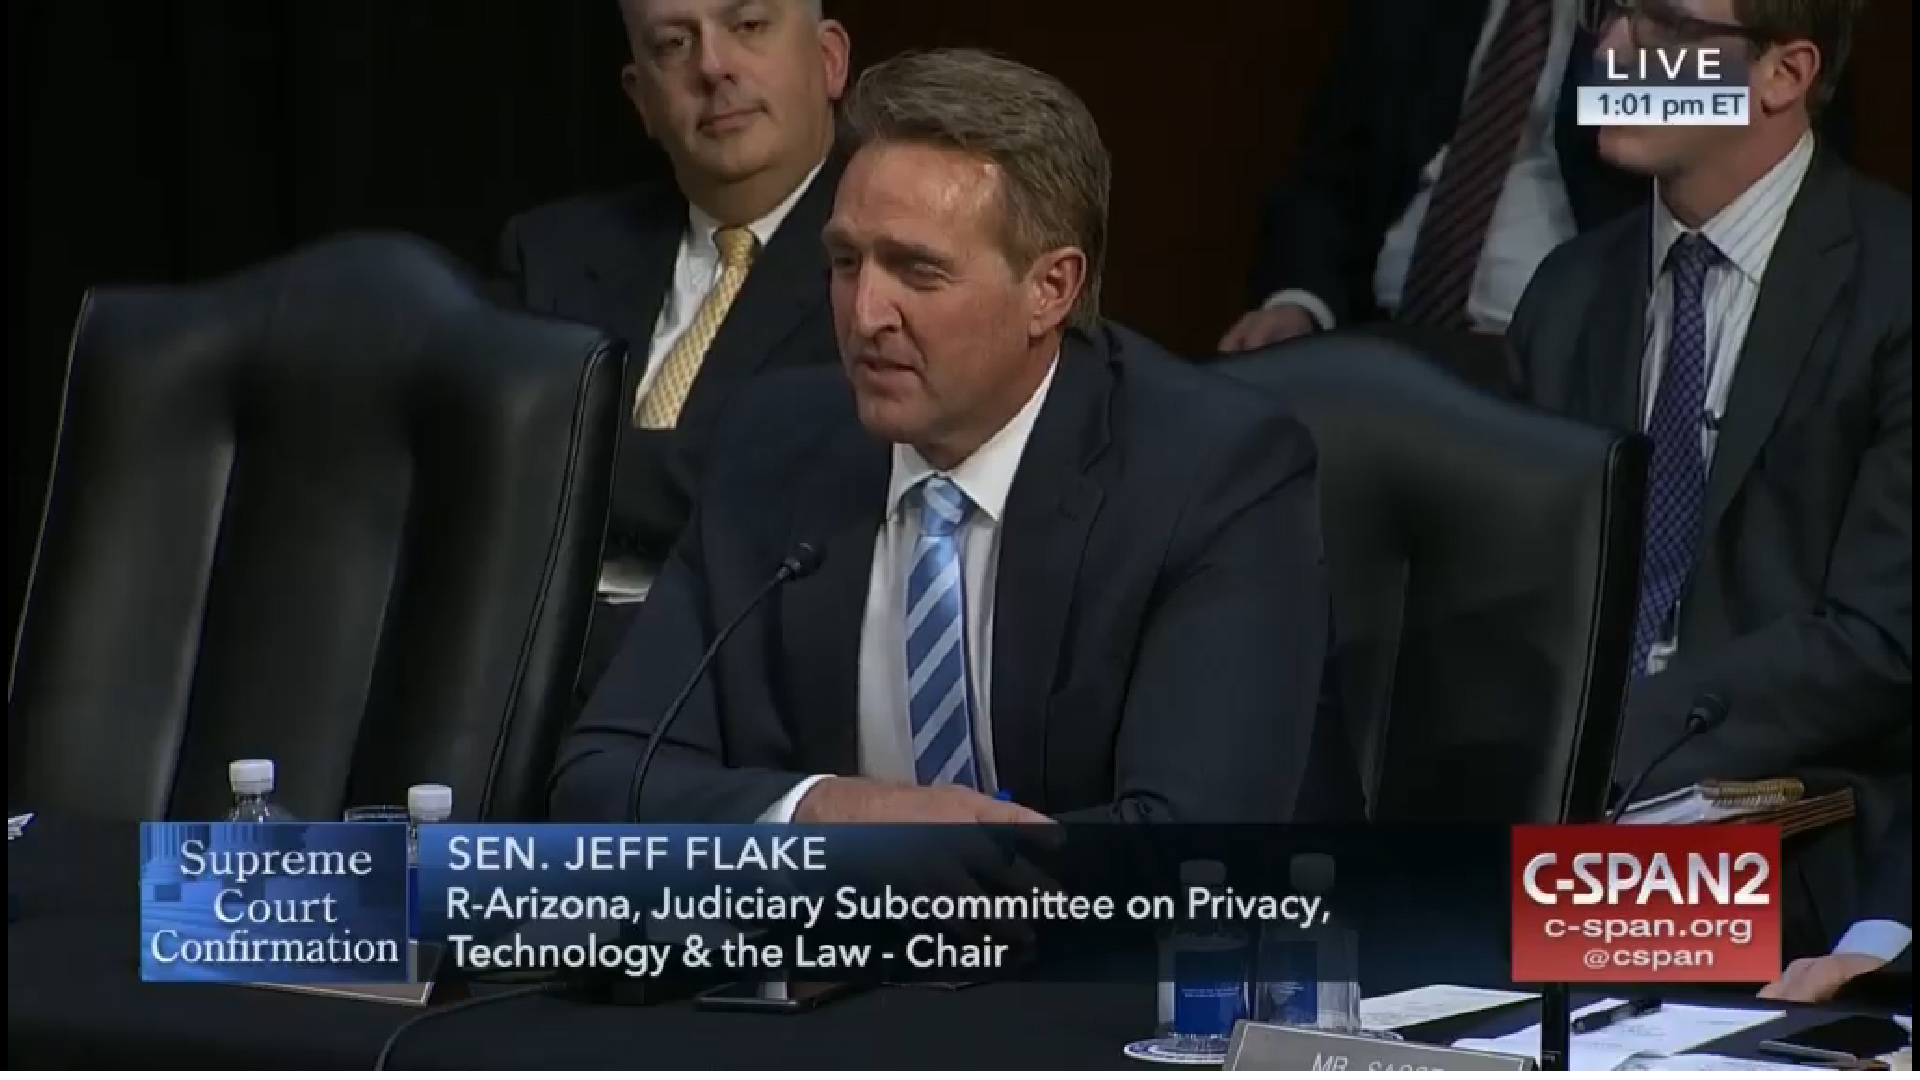 Sen. Jeff Flake, R-Arizona, spoke April 3 before a Senate committee voted to send the Supreme Court nomination of Judge Neil Gorsuch to the Senate floor.